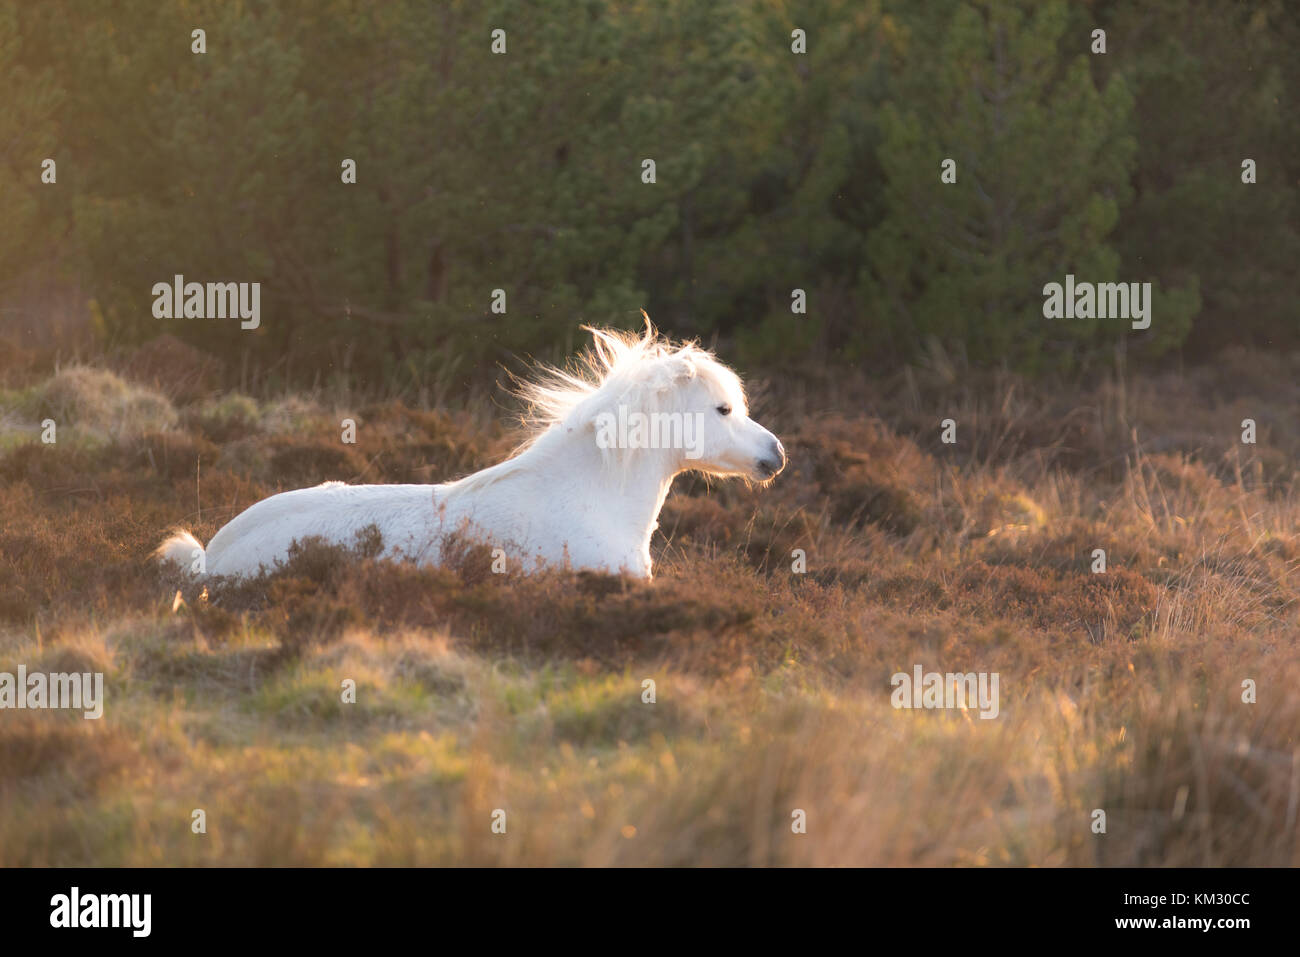 White horse - Andalusian stallion and sunset scenery - Stock Image